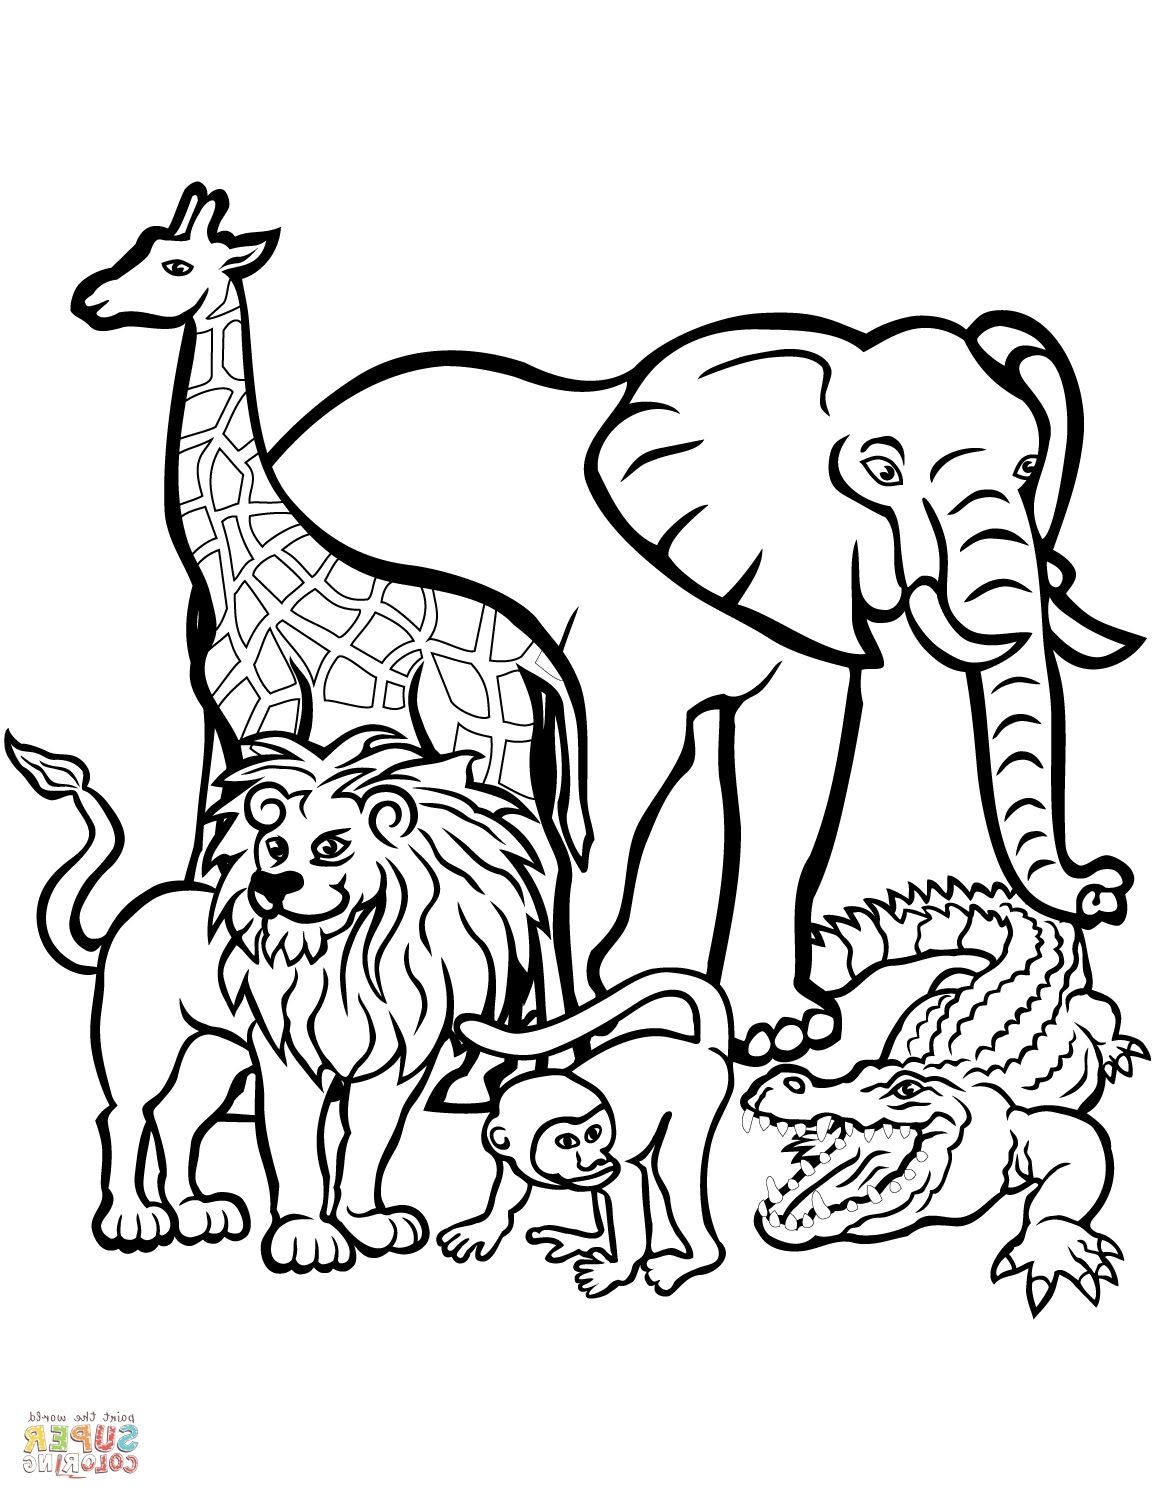 Zoo Animal Coloring Pages Animal Coloring Books Zebra Coloring Pages Animal Coloring Pages